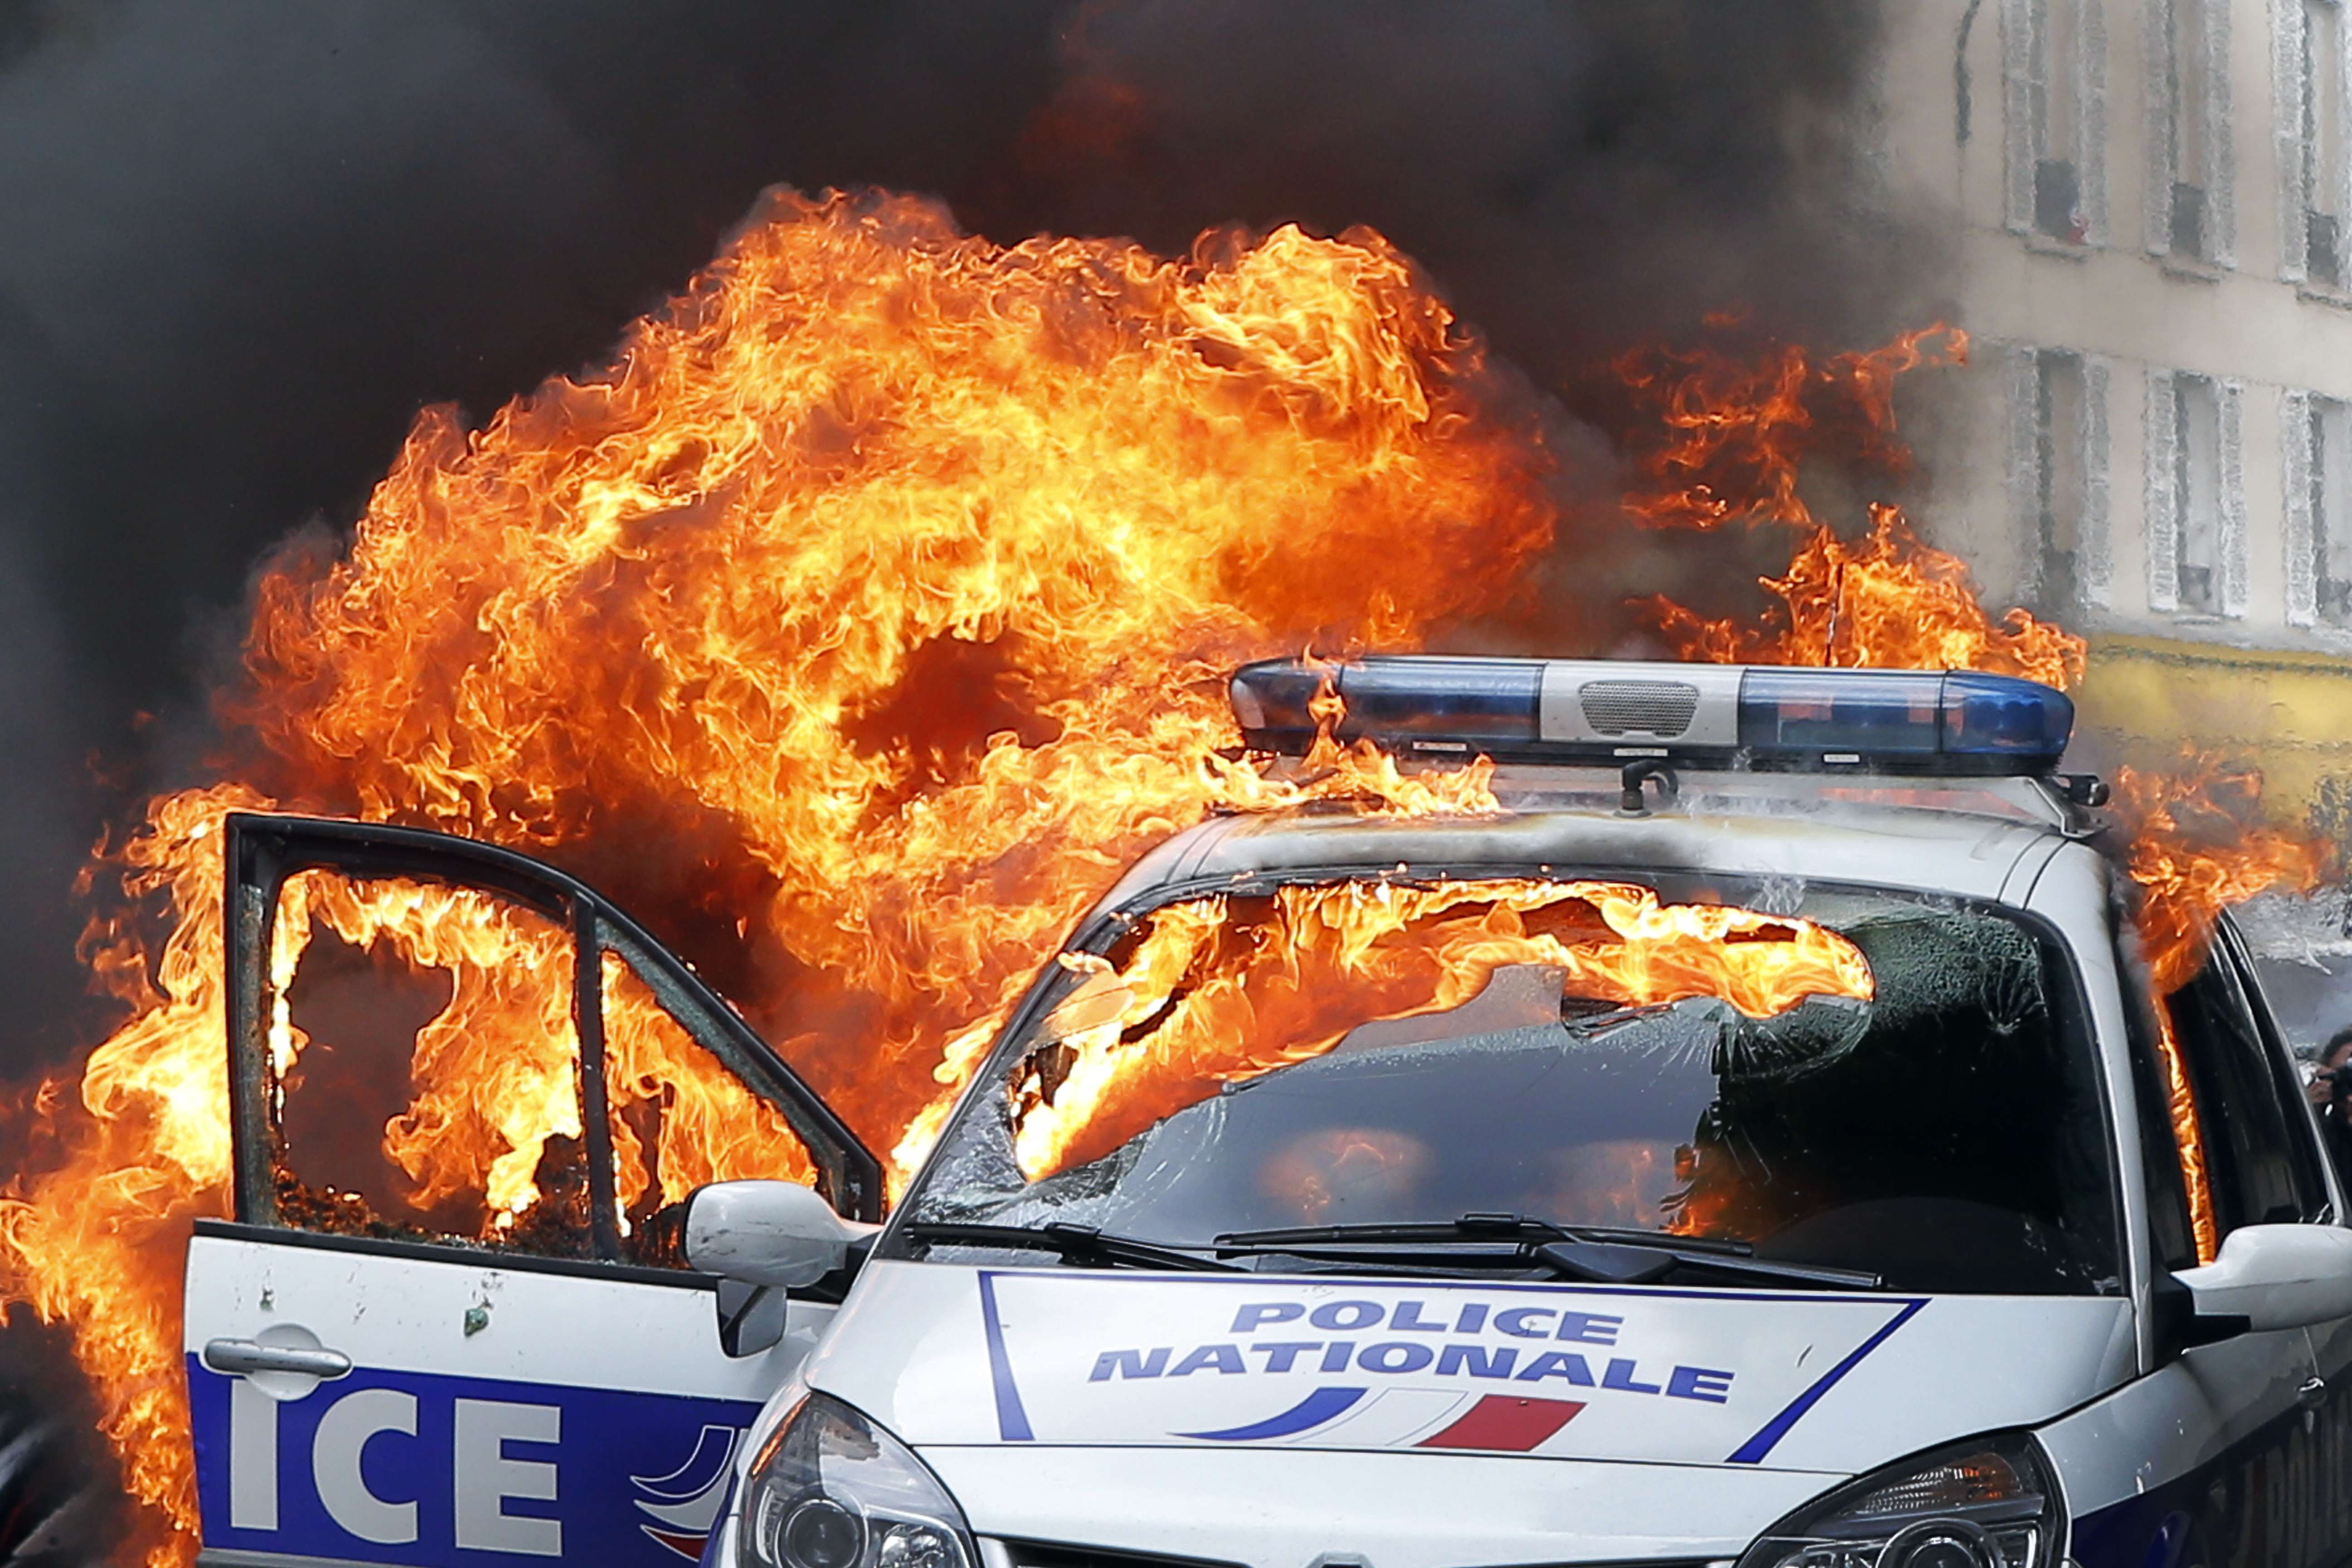 carfire1 Dramatic Footage Shows Mob Torching Police Car With Officers Inside